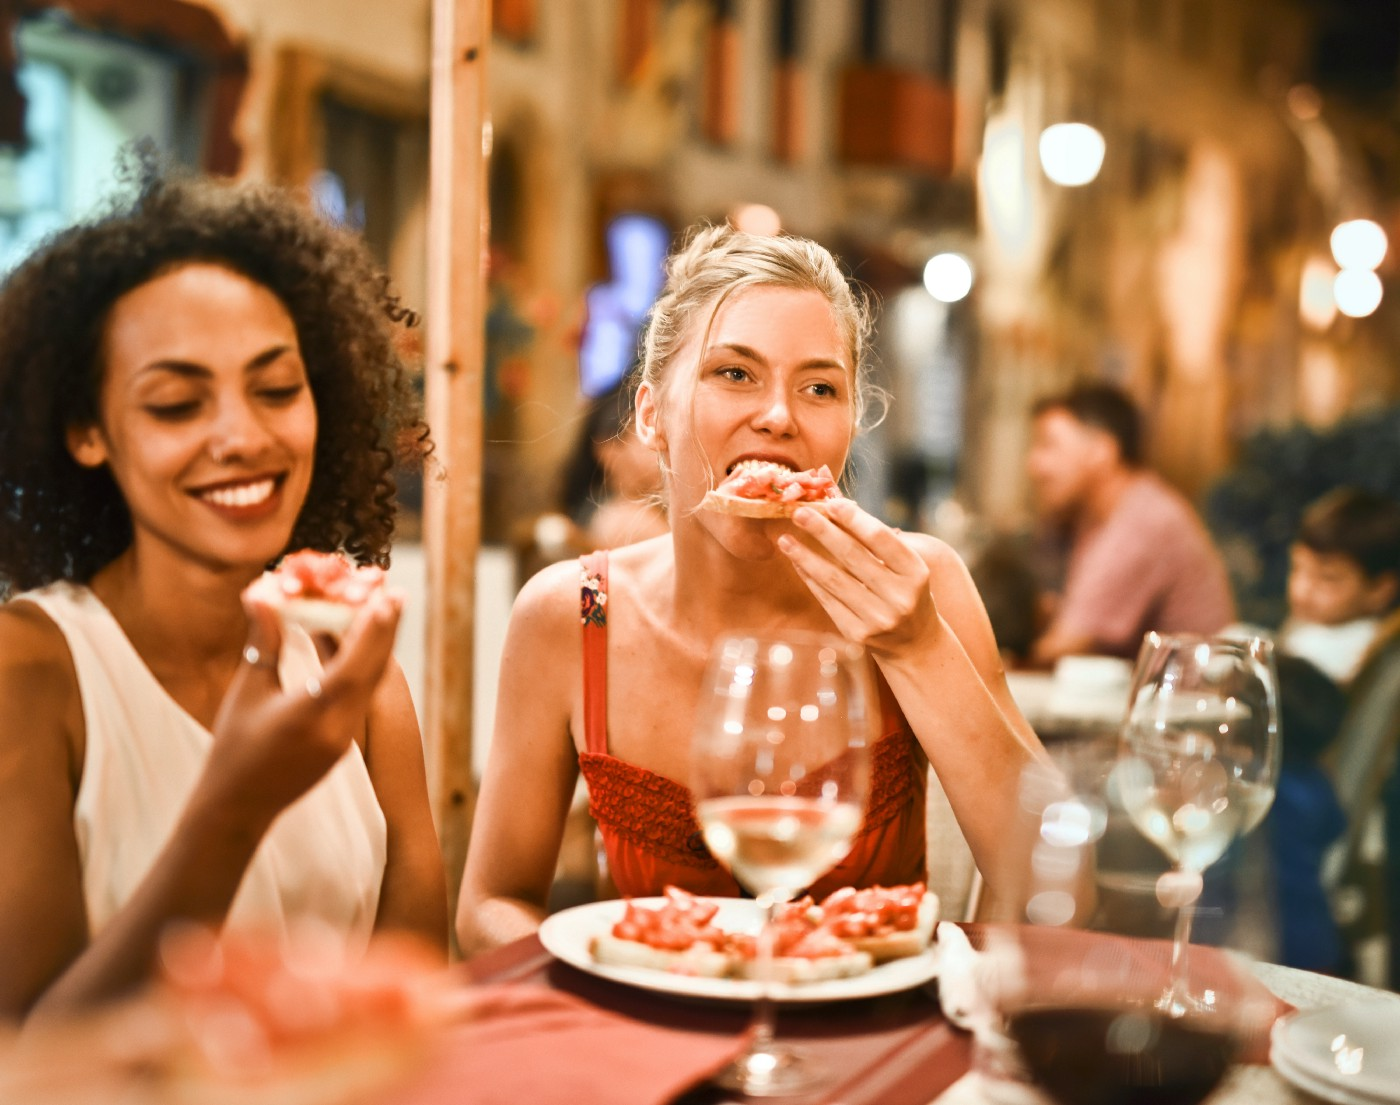 Two people sit at a table in a restaurant eating pizza.